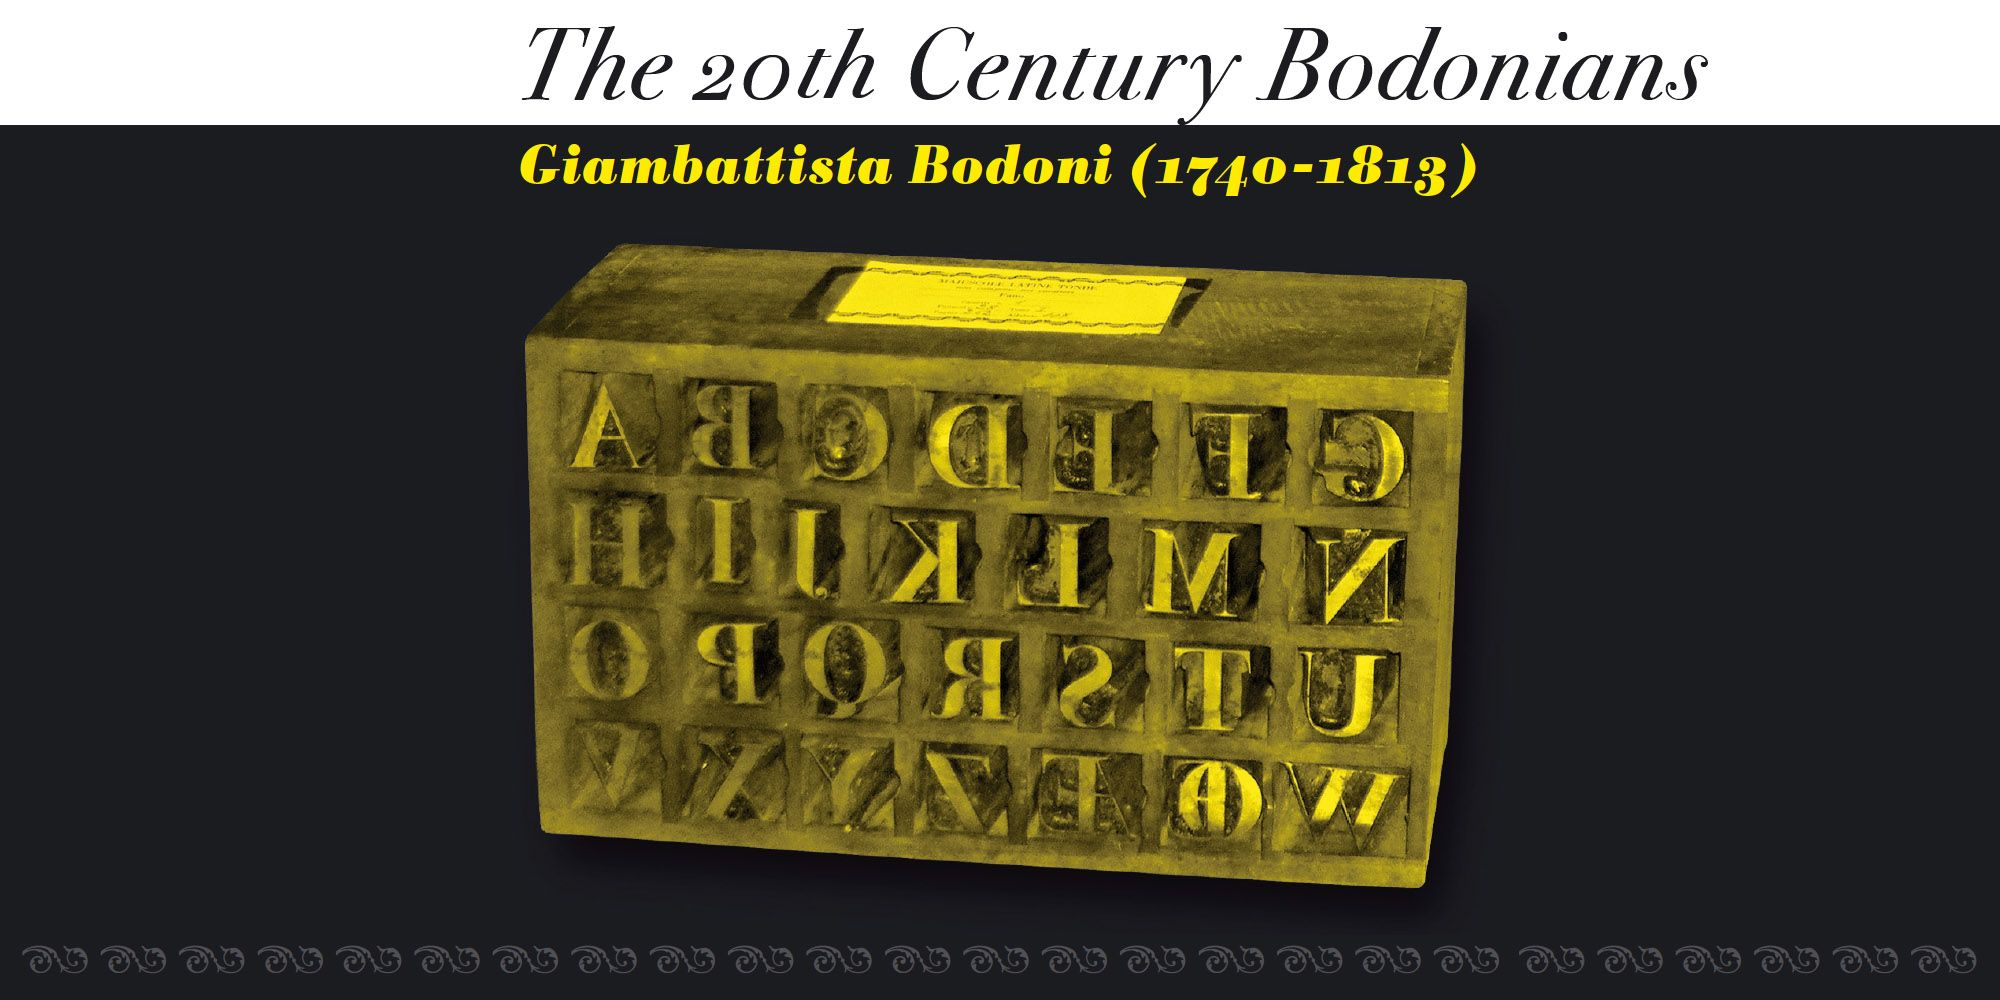 The 20th Century Bodonians: a synopsis